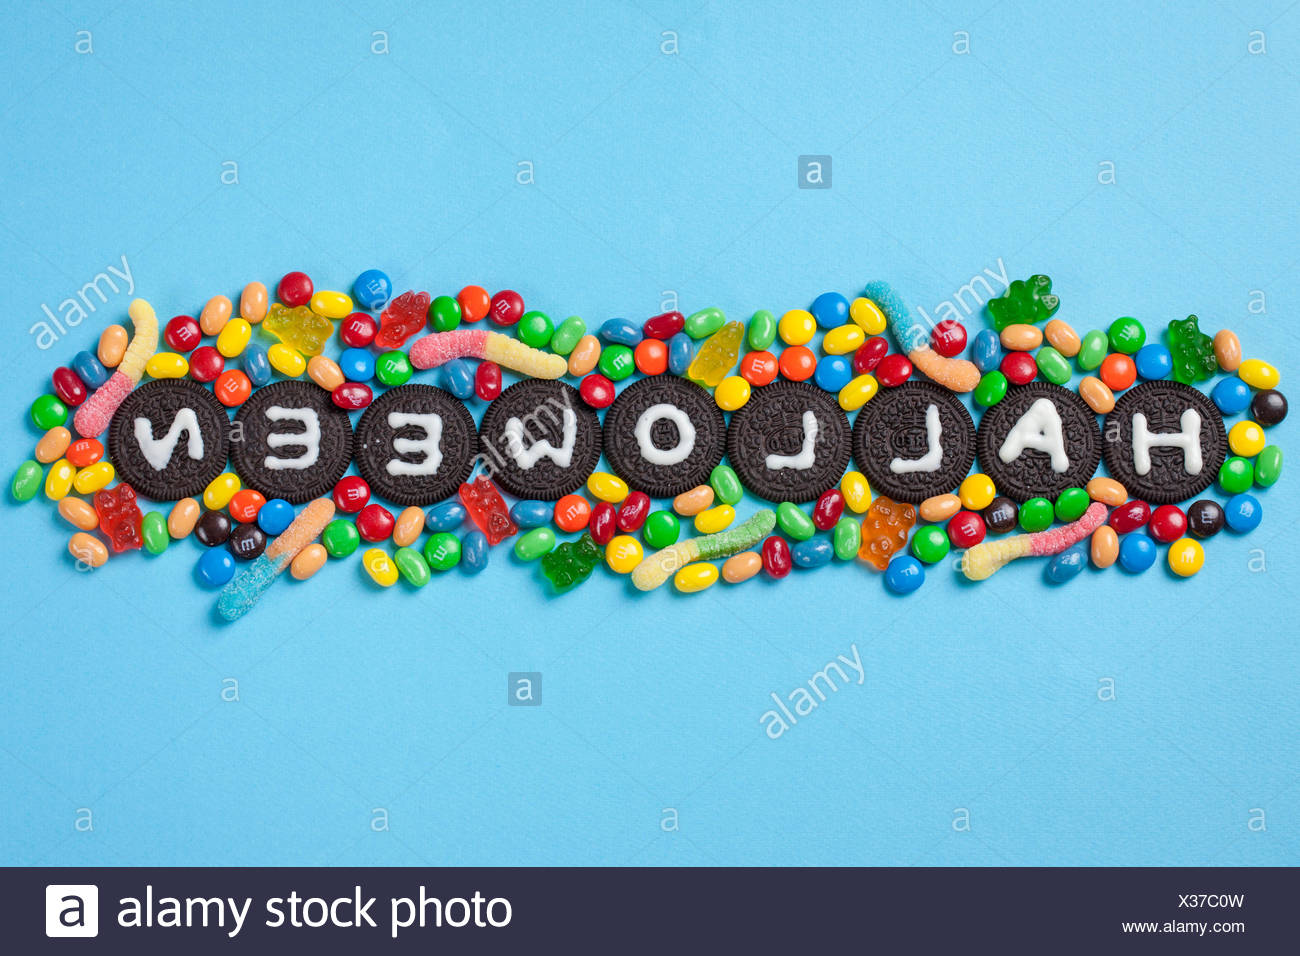 Typographical HALLOWEEN made of cookies and jellybeans - Stock Image